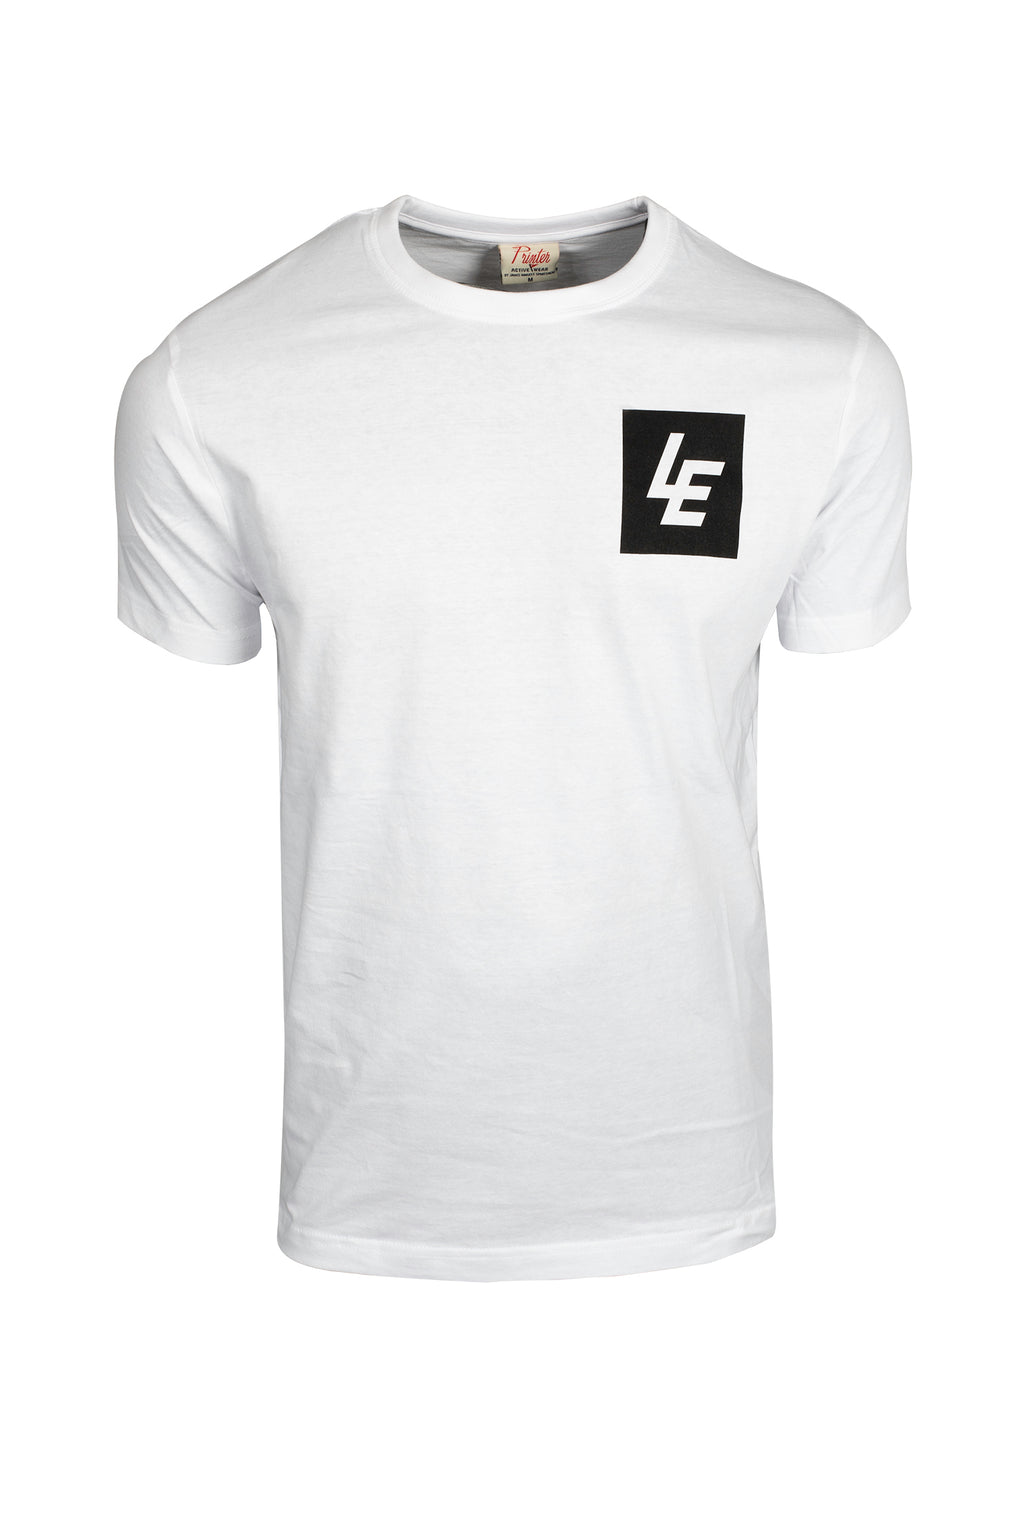 Liam Everts - LE Shirt - White for Adults